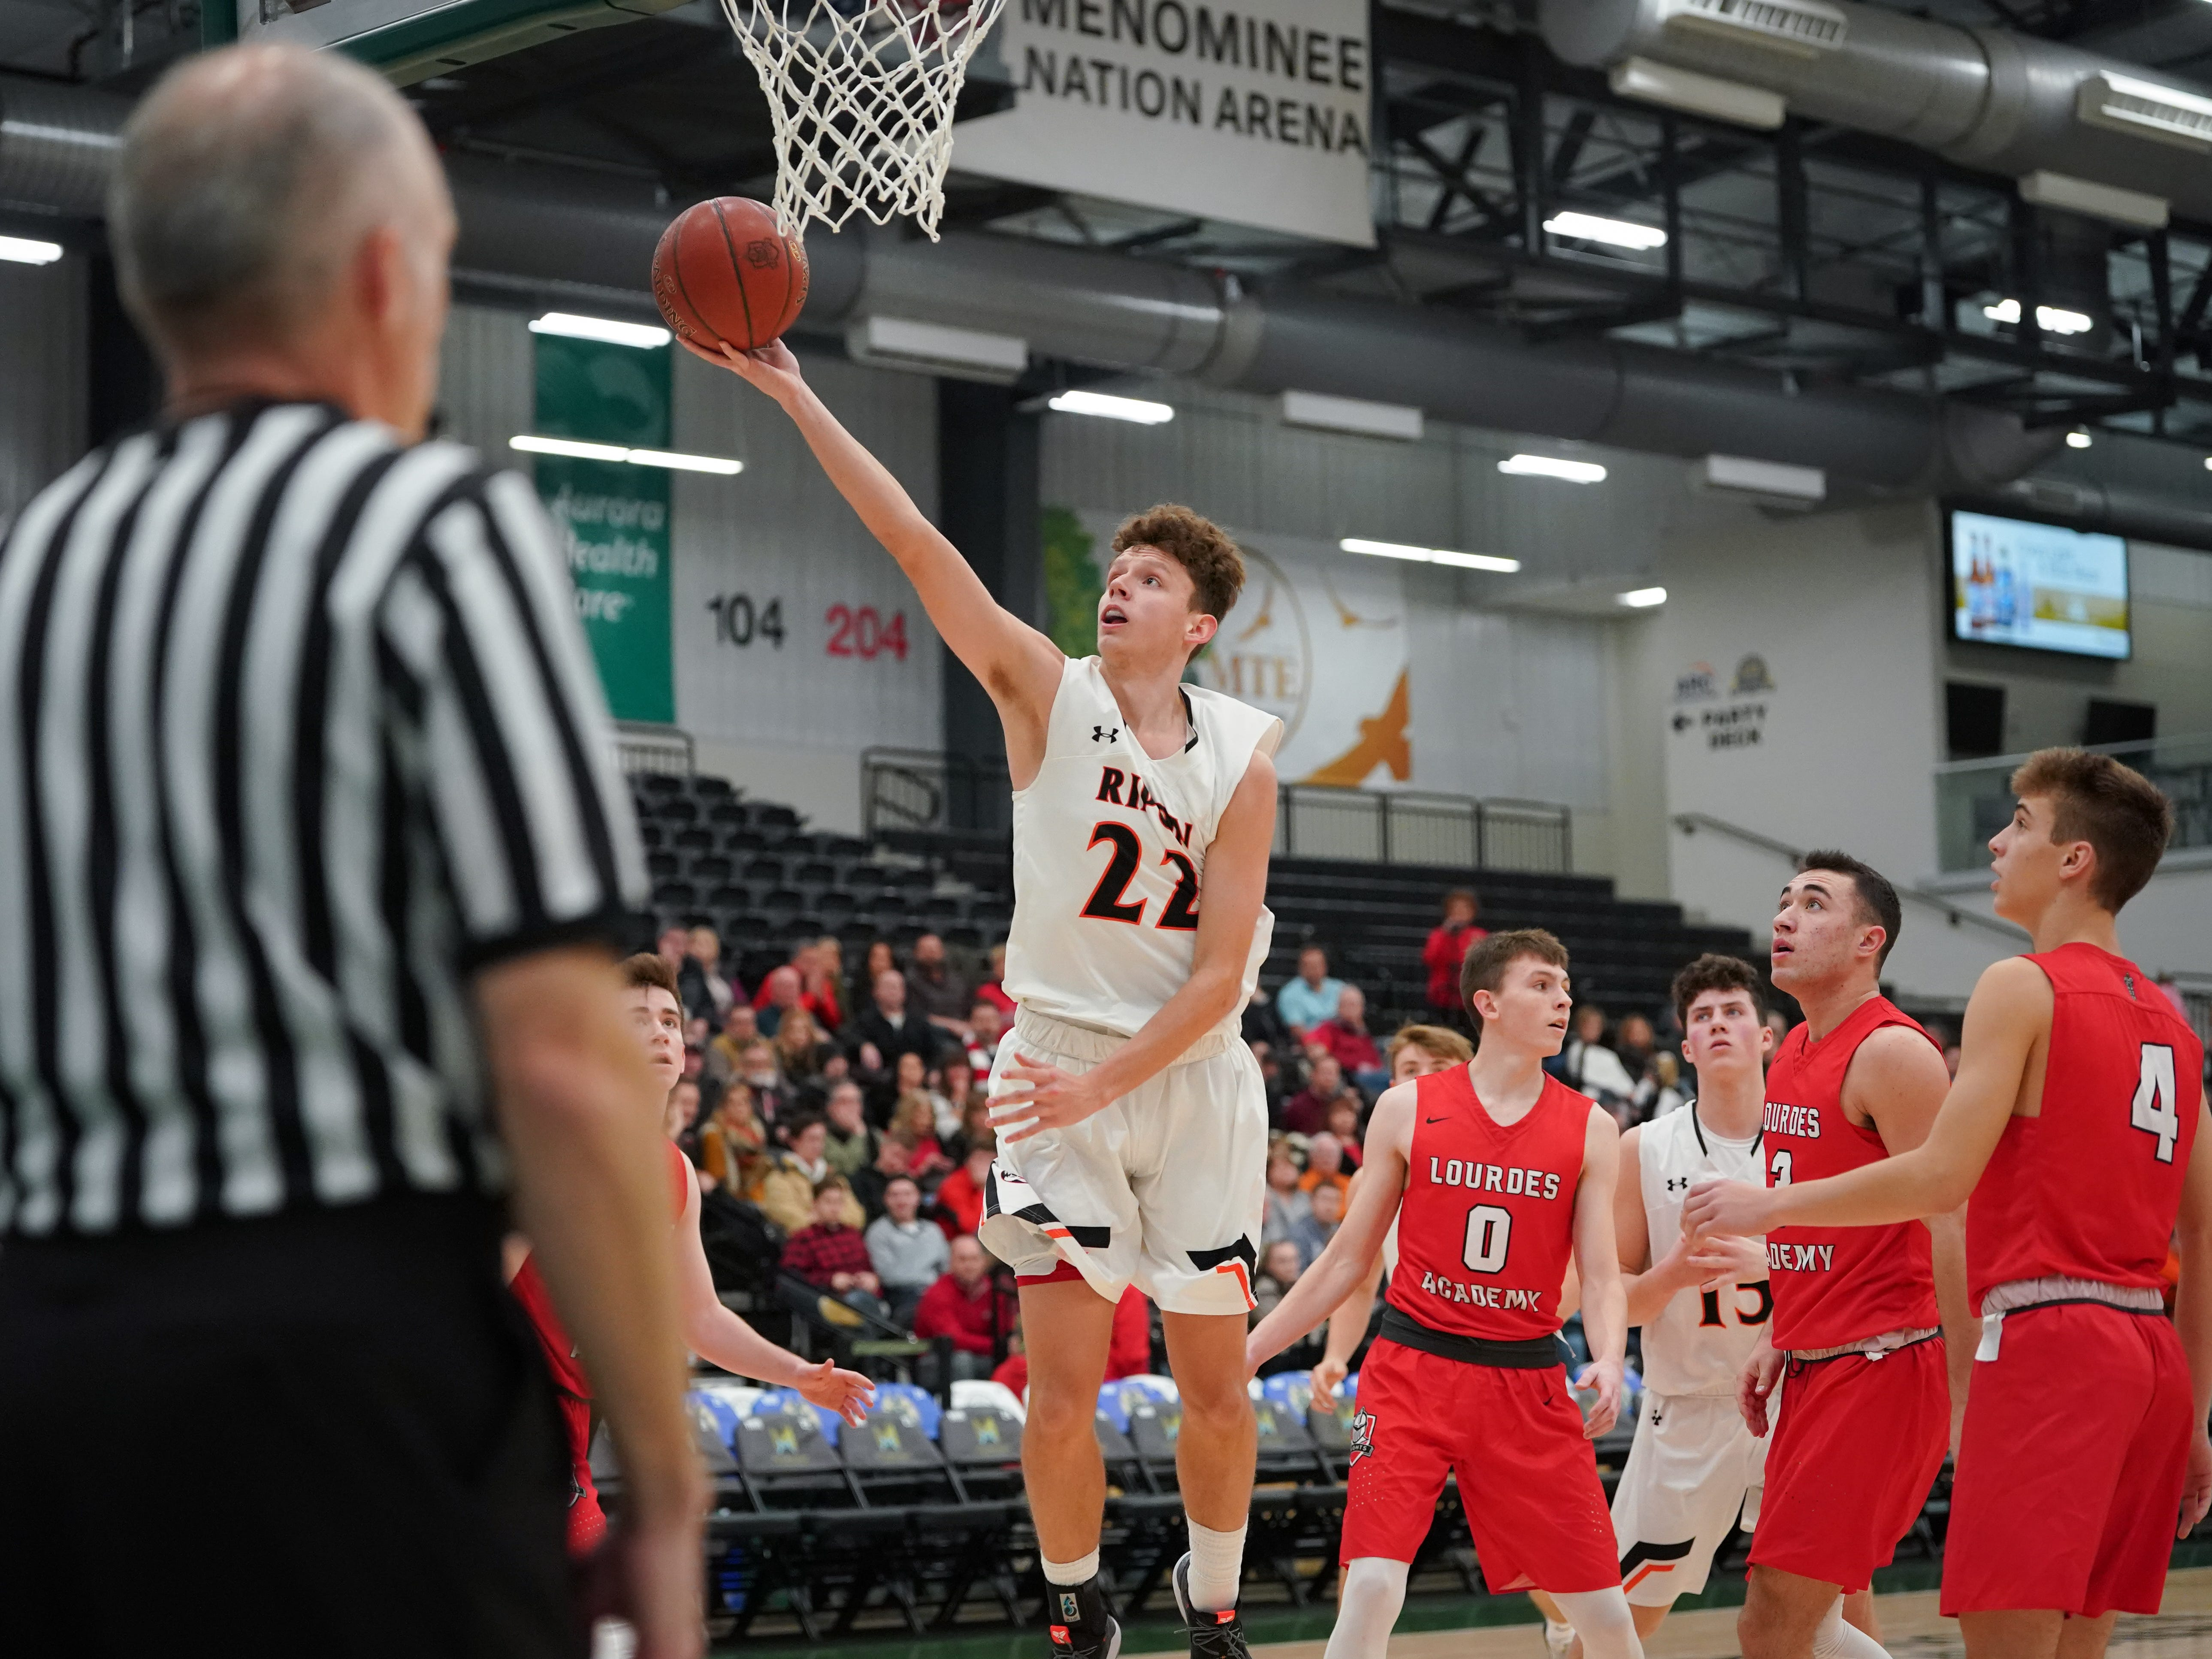 Max Beuthin (22) of Ripon goes up for a layup. The Lourdes Knights and Ripon Tigers met in a nonconference basketball game Saturday afternoon, December 29, 2018 at the Menomonie Nation Arena in Oshkosh.